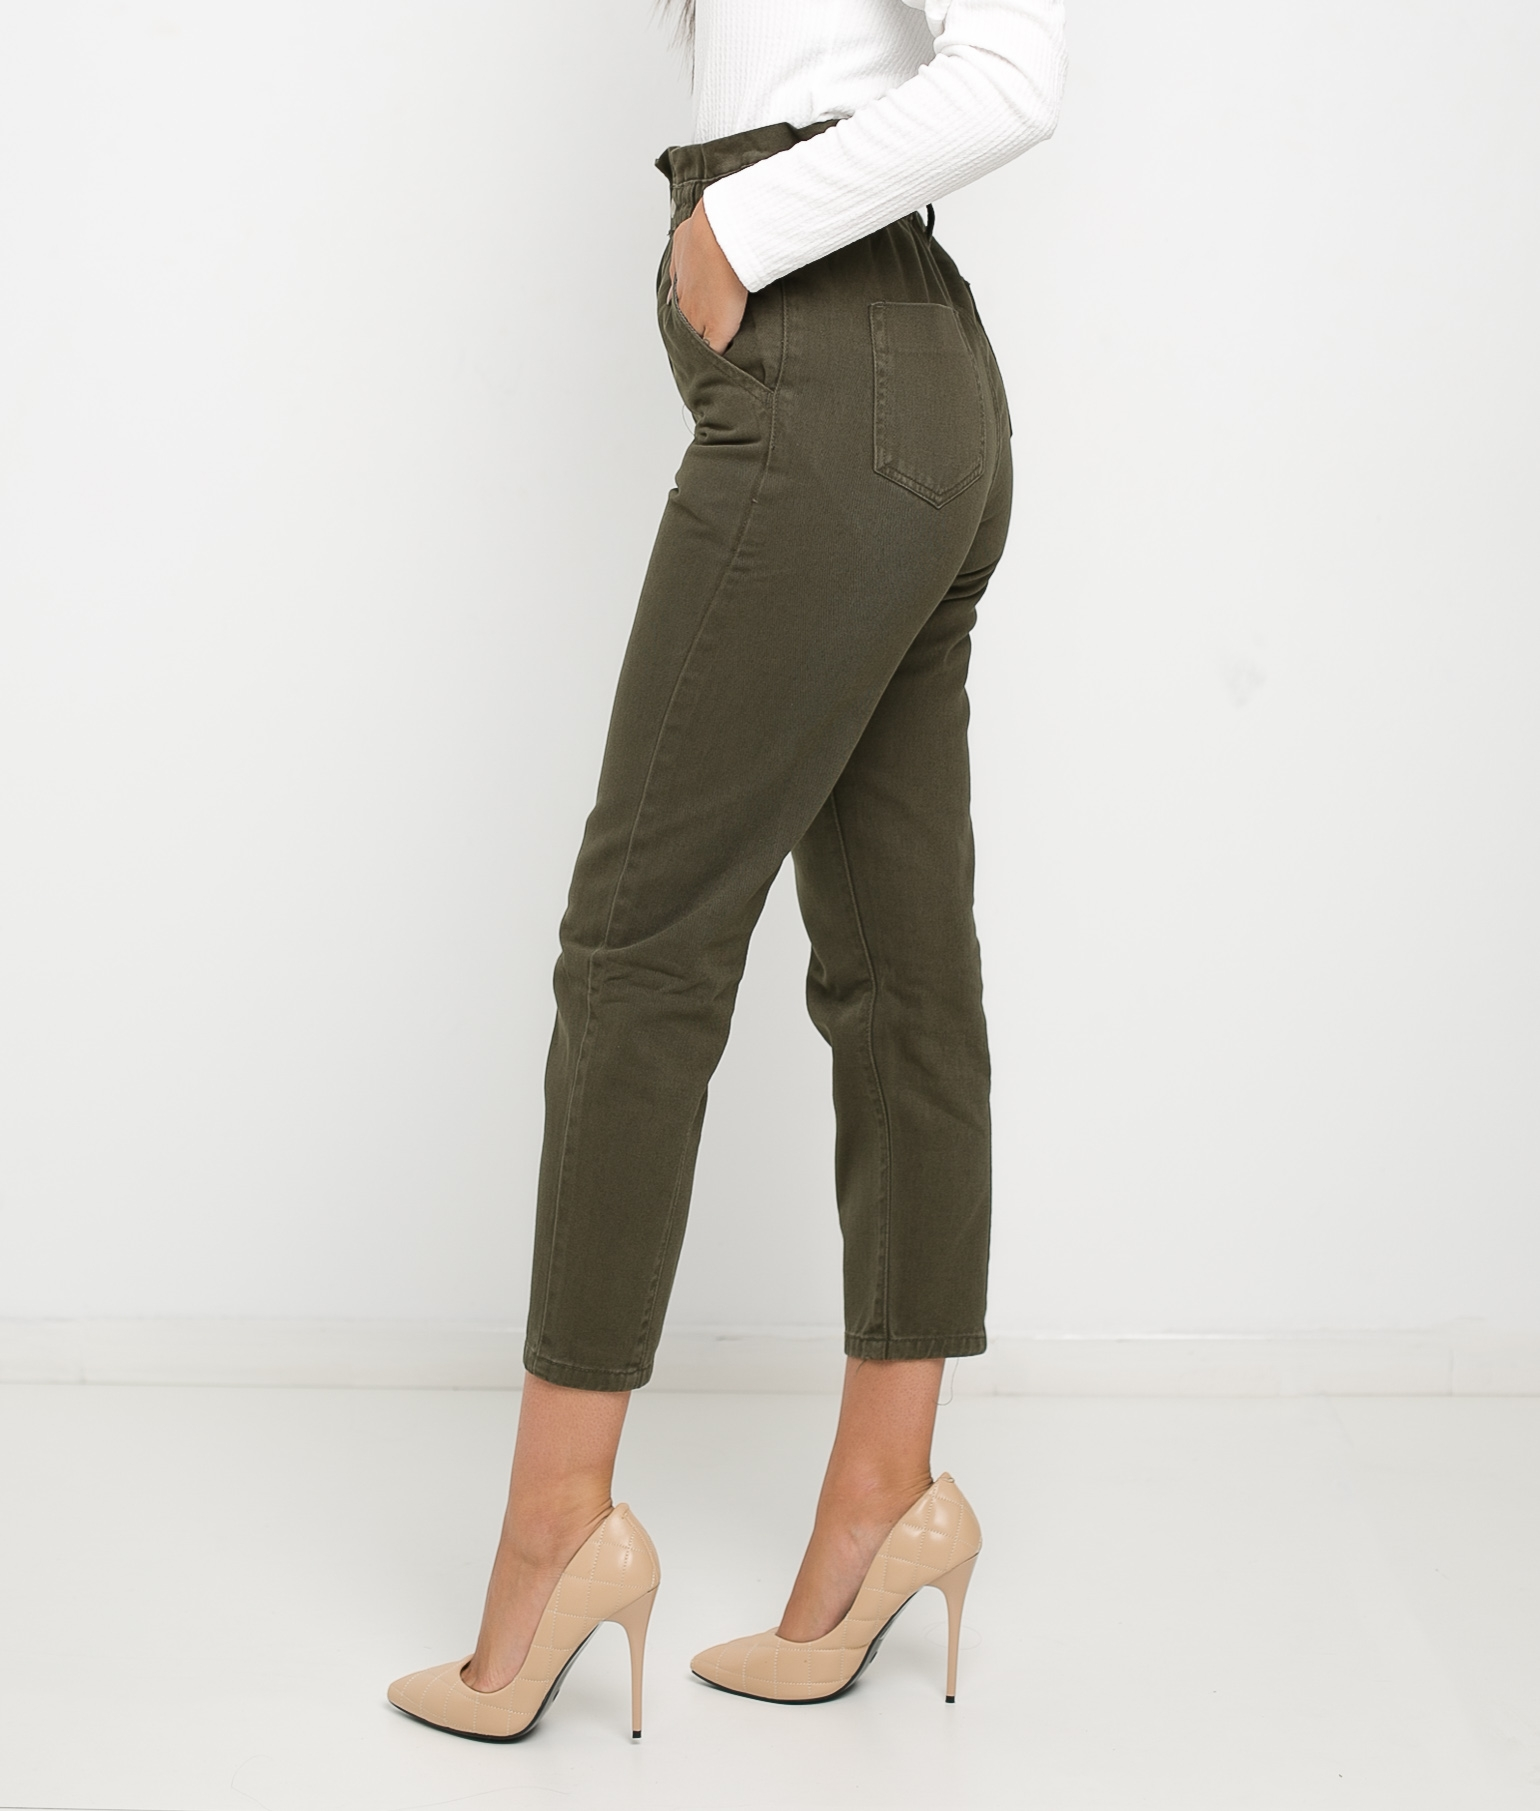 CLEVE TROUSERS - KHAKI